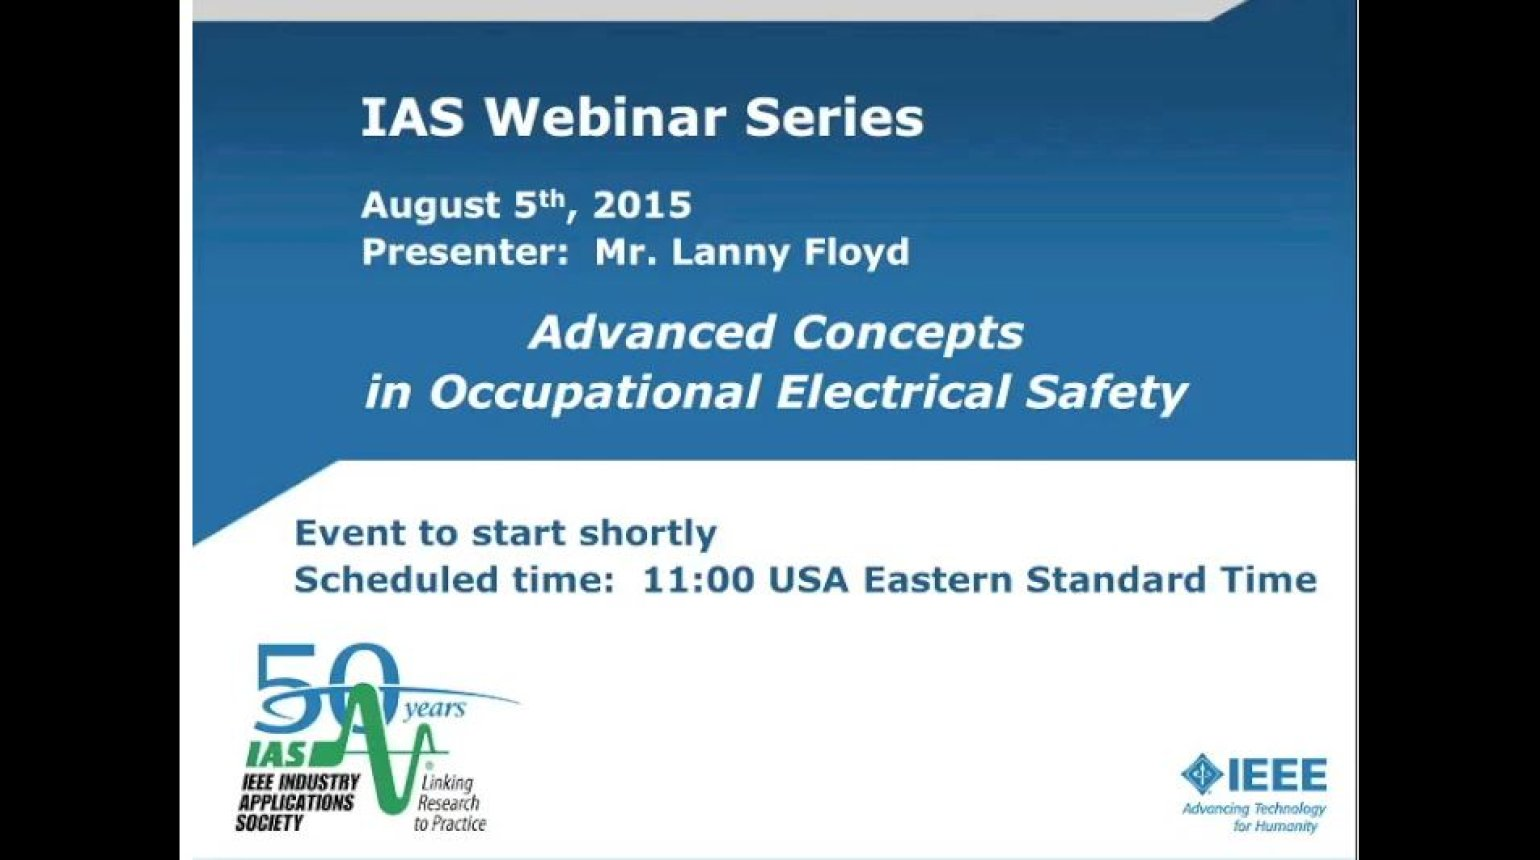 IAS Webinar Series - Advanced Concepts in Occupational Electrical Safety